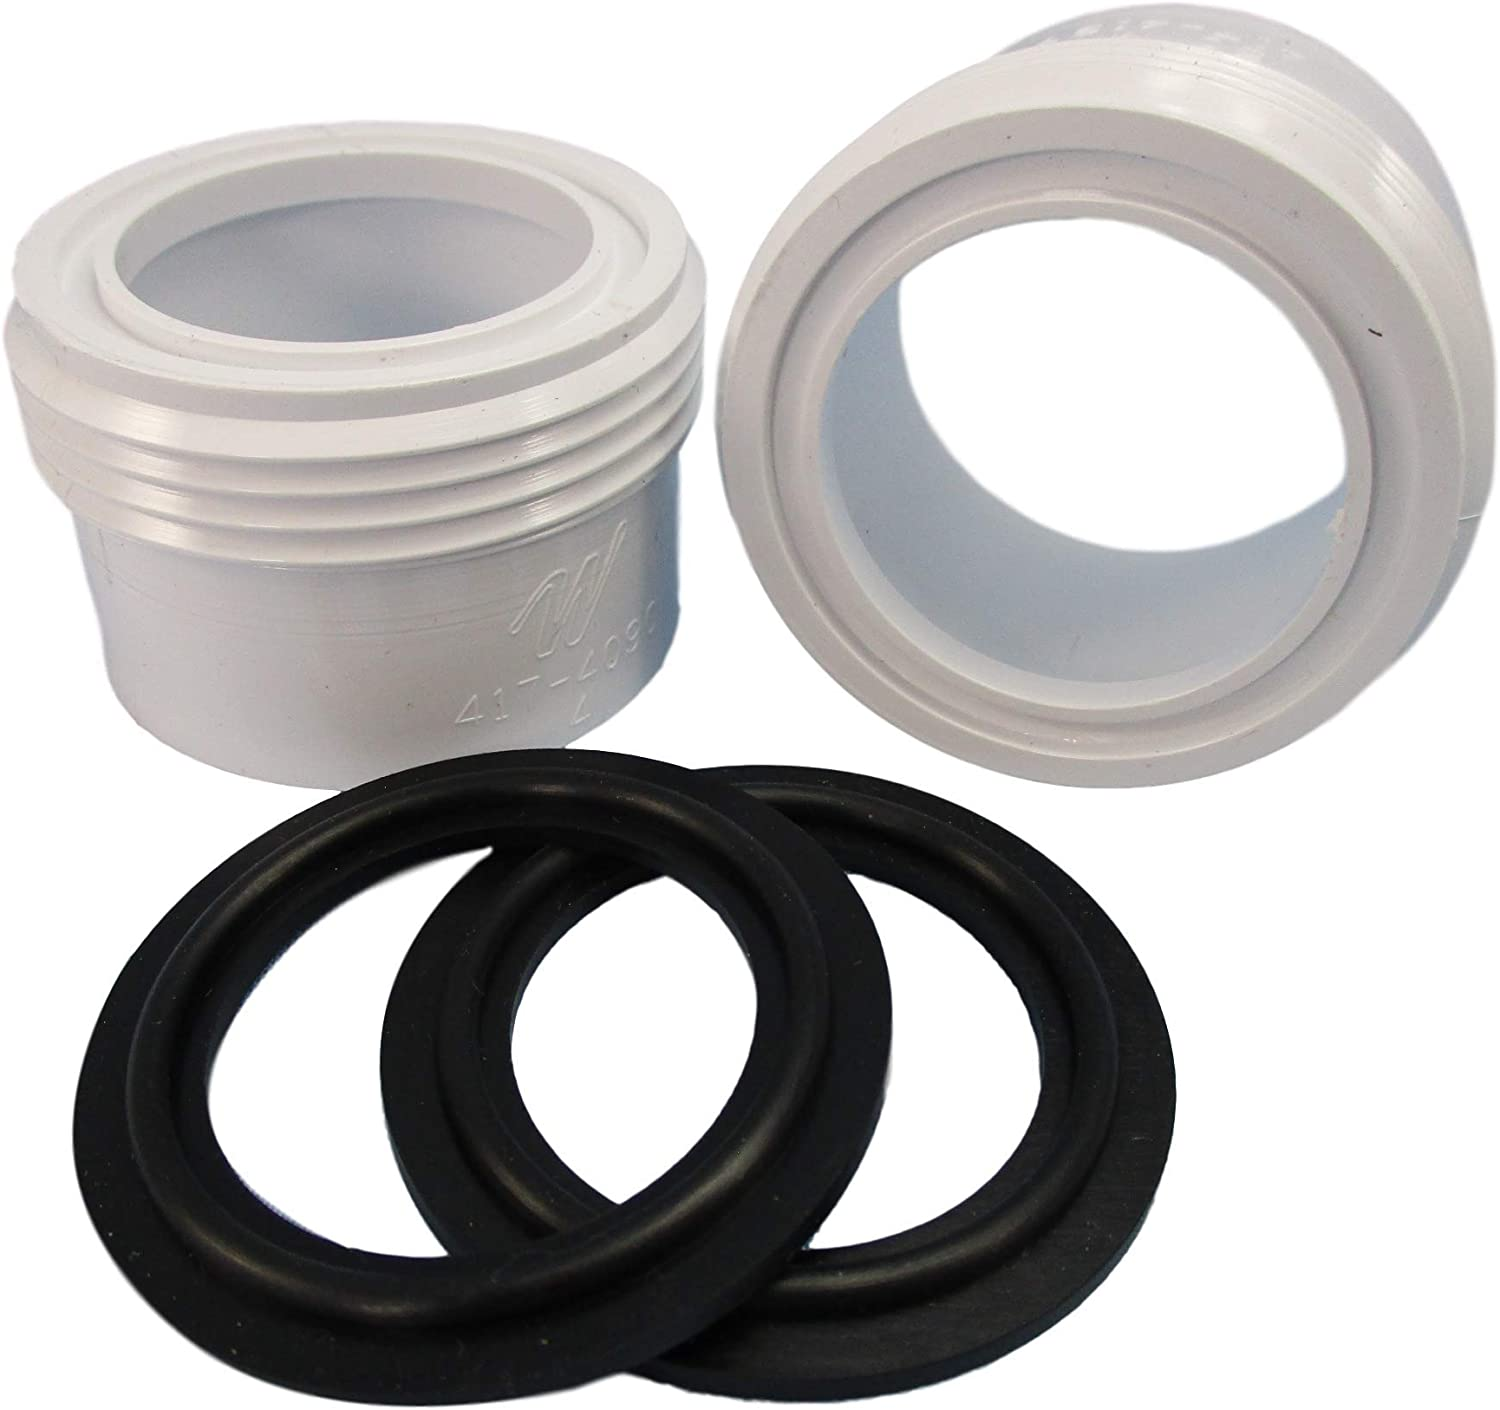 Set Be super welcome of 2 Hot Tub Direct sale manufacturer Spa 1 Heater Union X Slip with 2